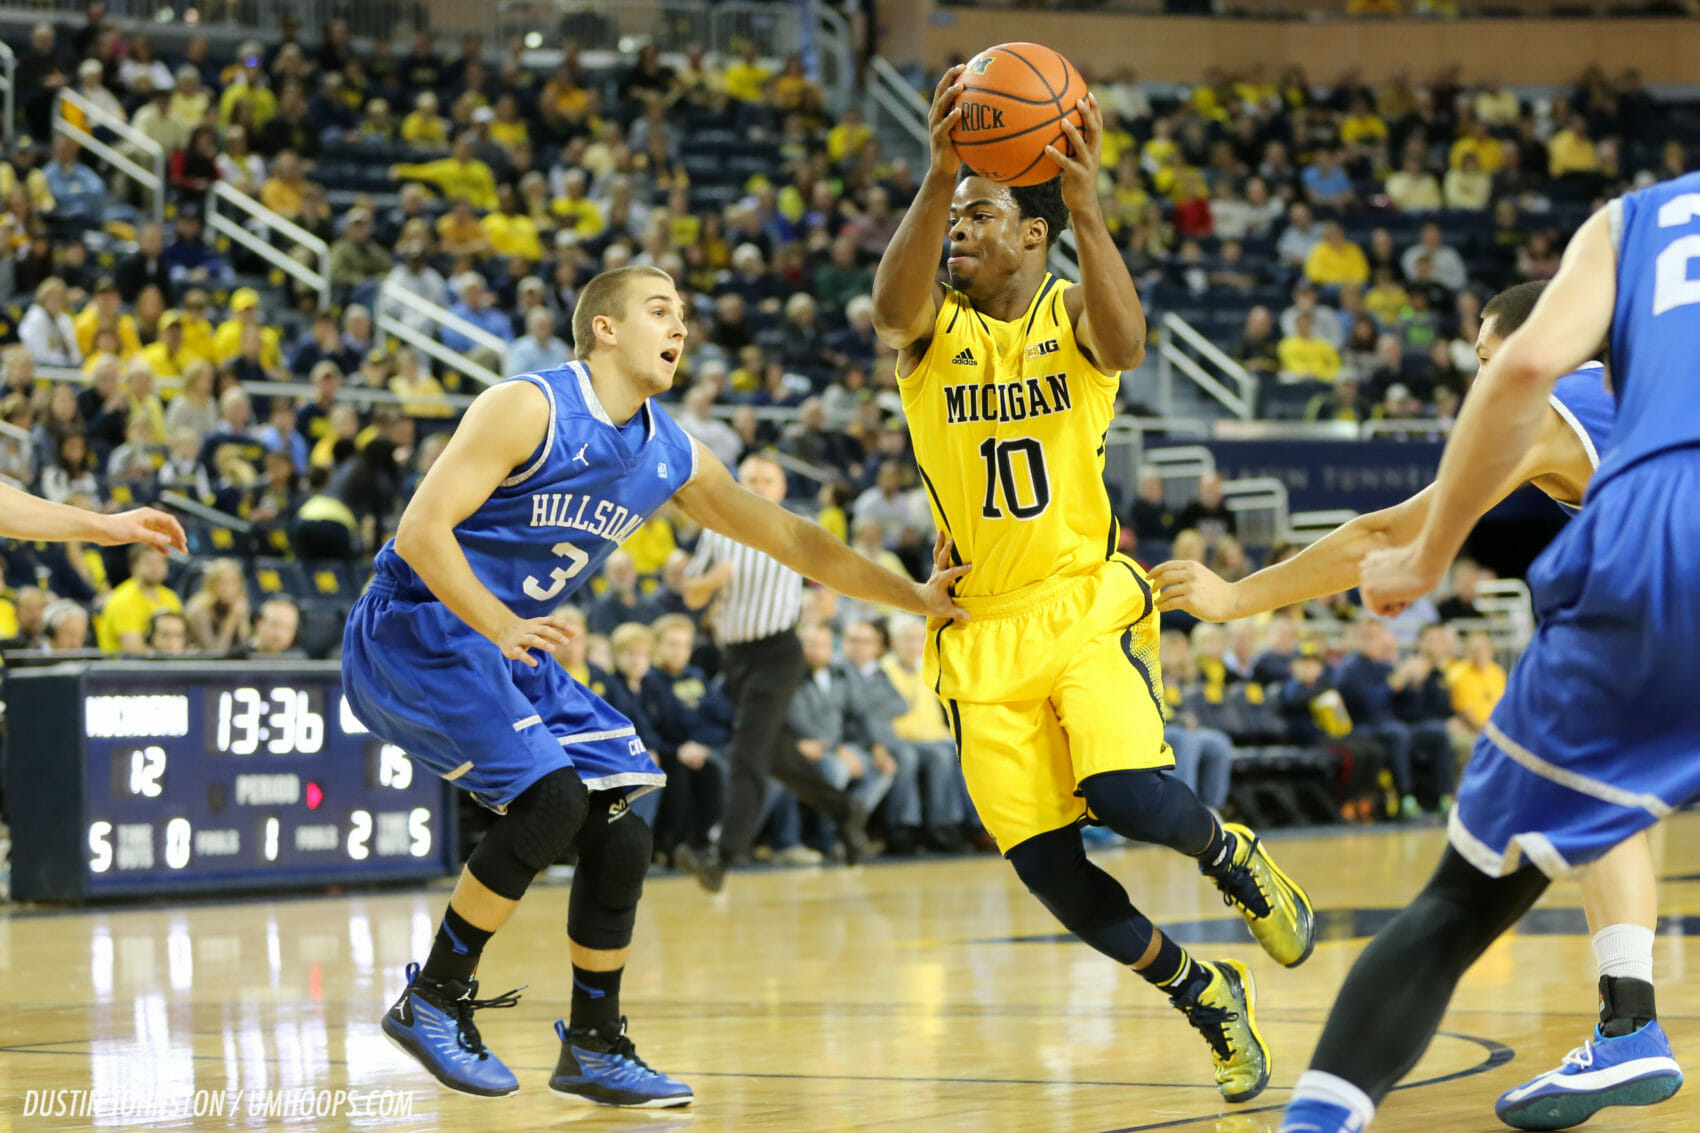 Michigan 92, Hillsdale 68-4